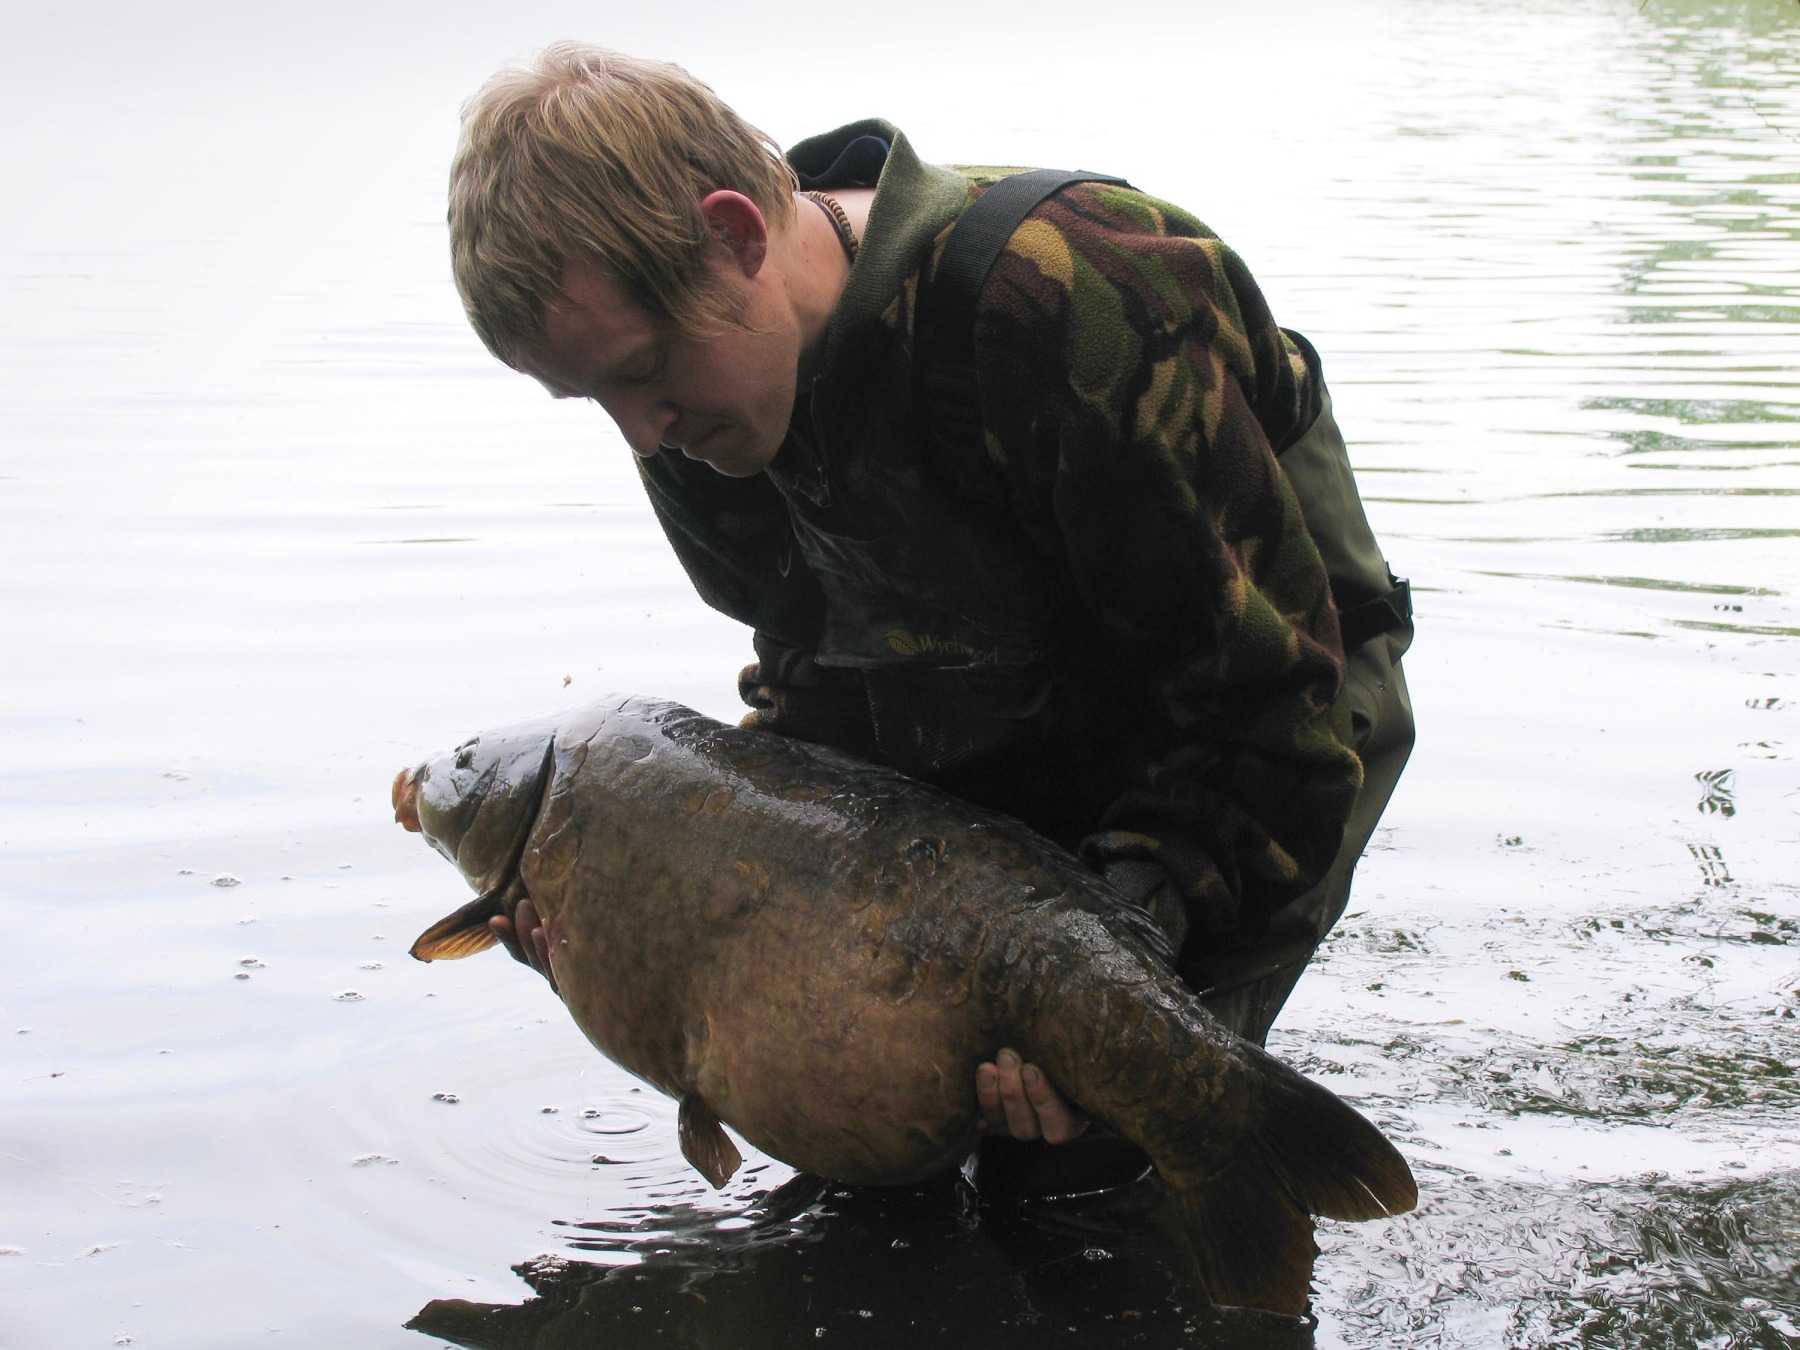 Burghfield was a hugely demanding place in terms of tackle requirements and any inferior components were quickly exposed! The biggest surviving original during my time on the lake, Double Stomach about to be released